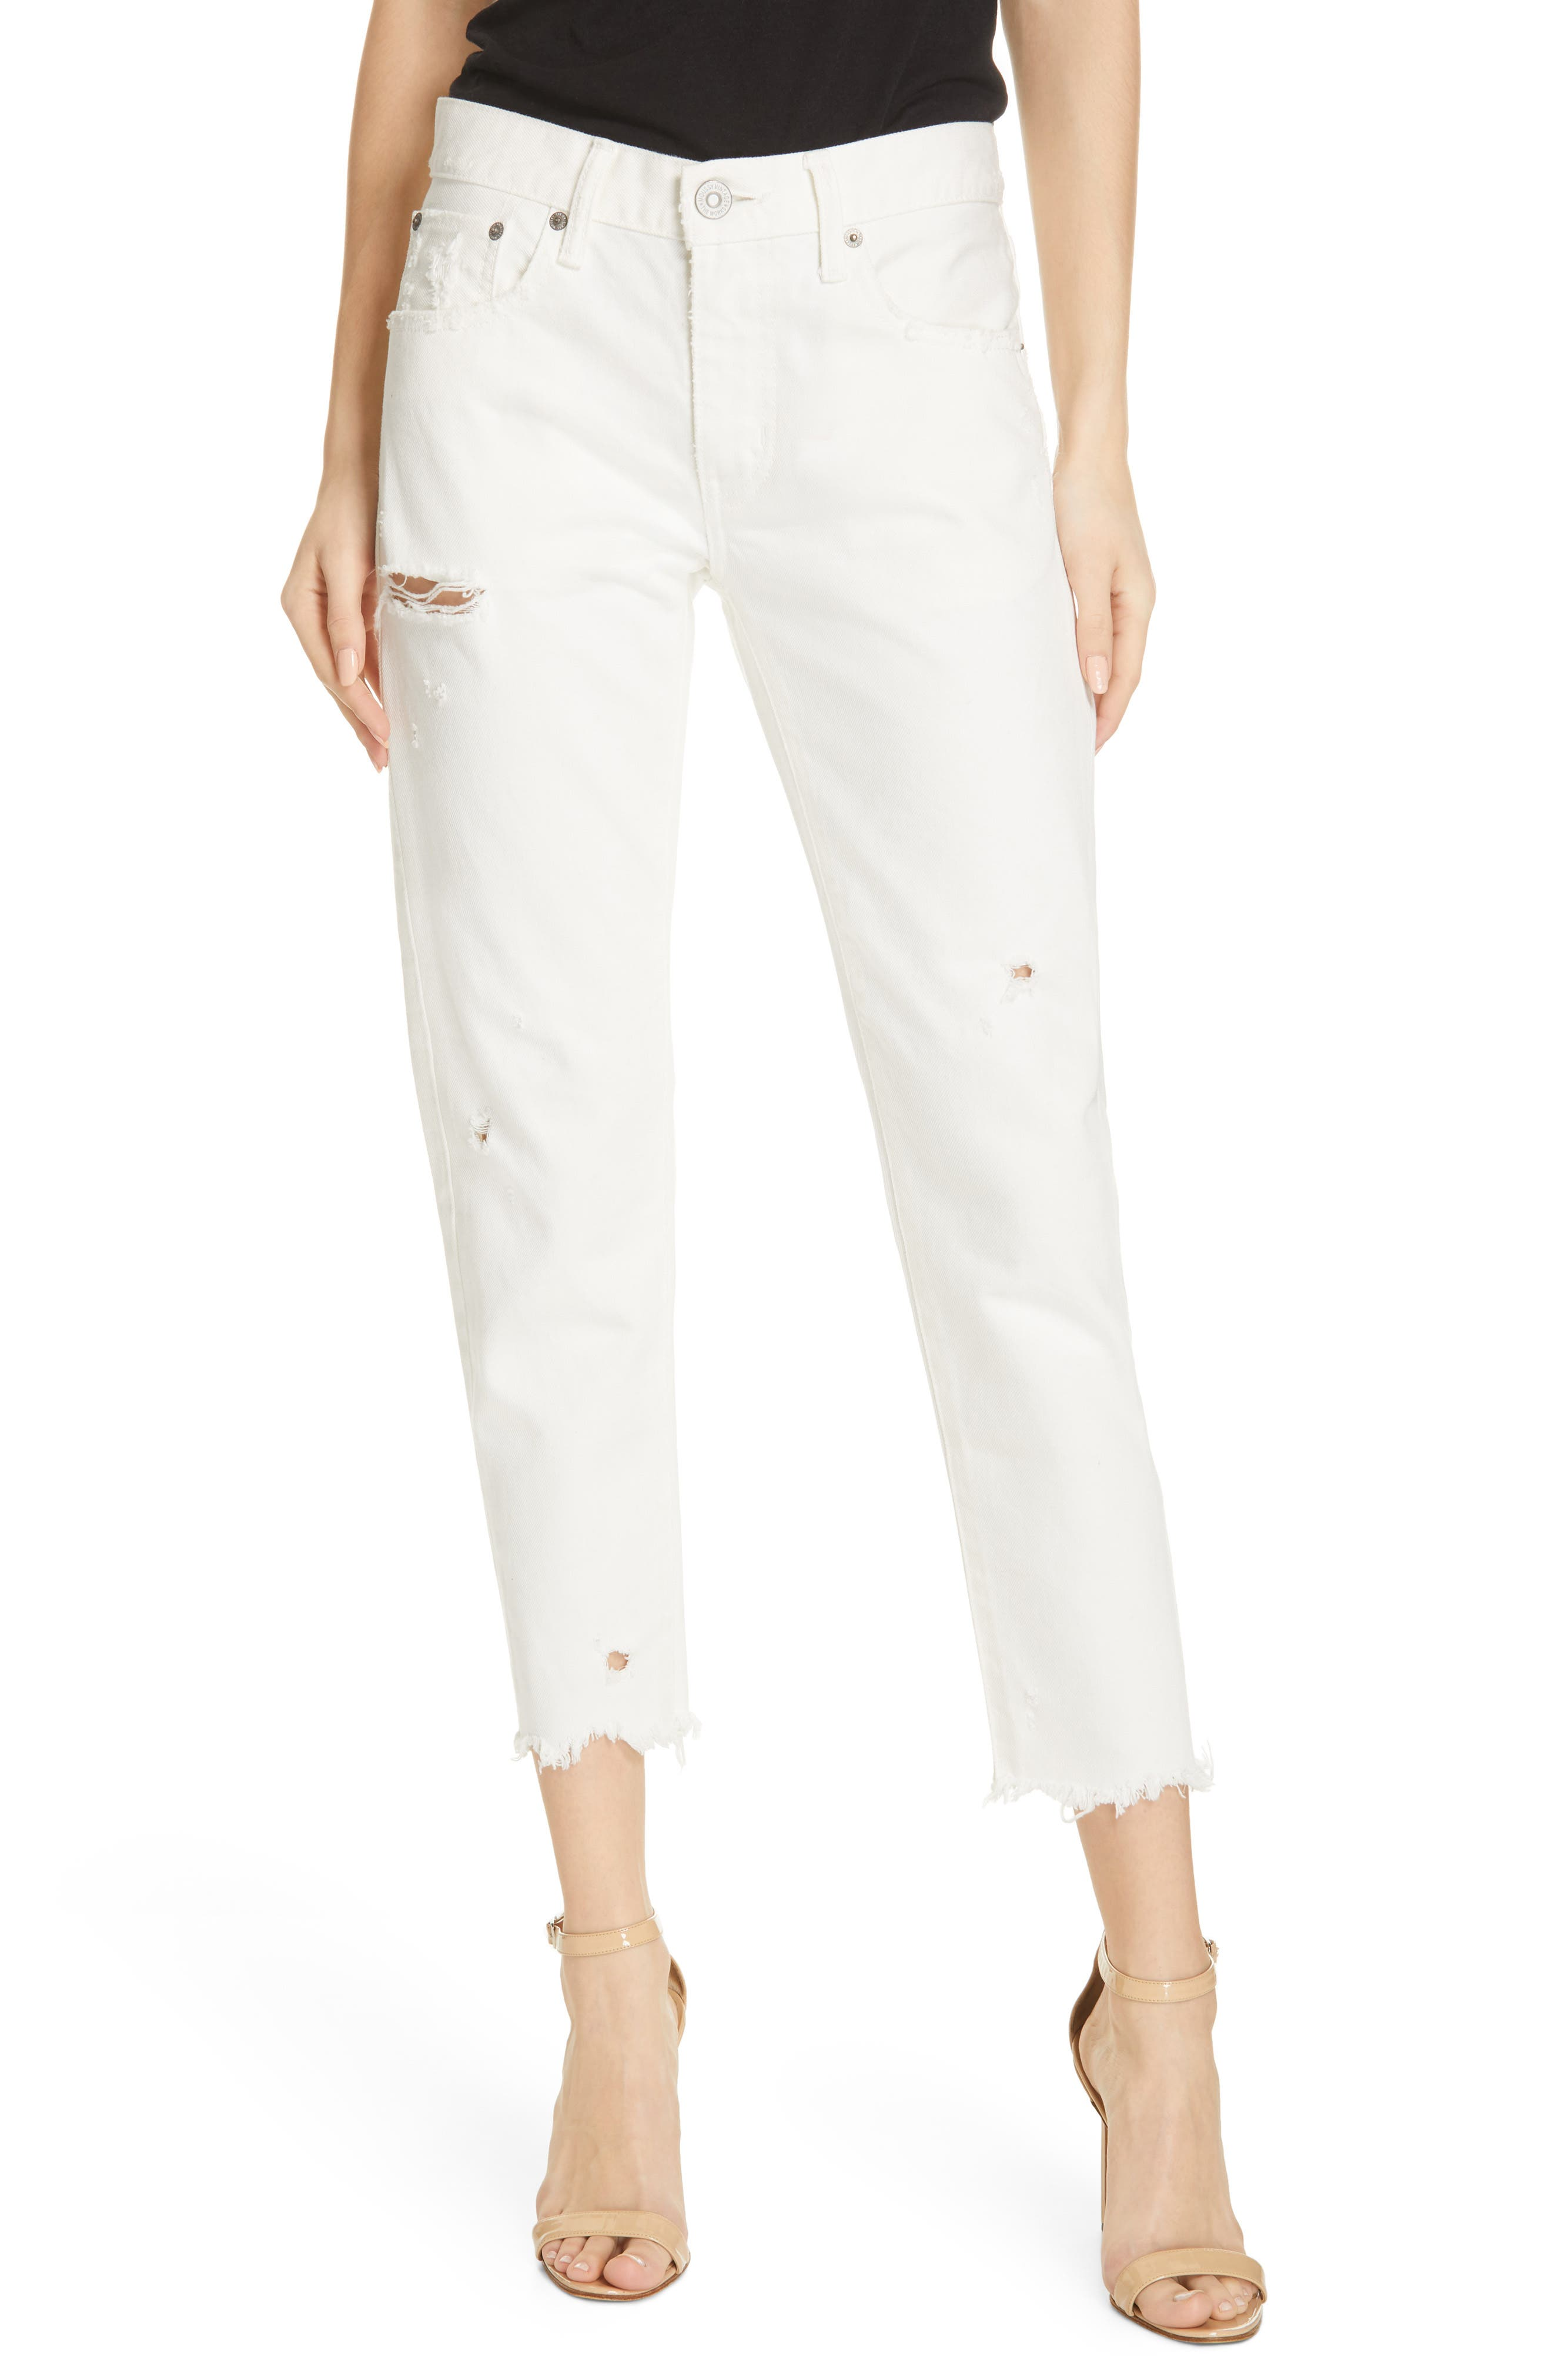 MOUSSY VINTAGE Kelley Tapered Crop Jeans, Main, color, WHITE